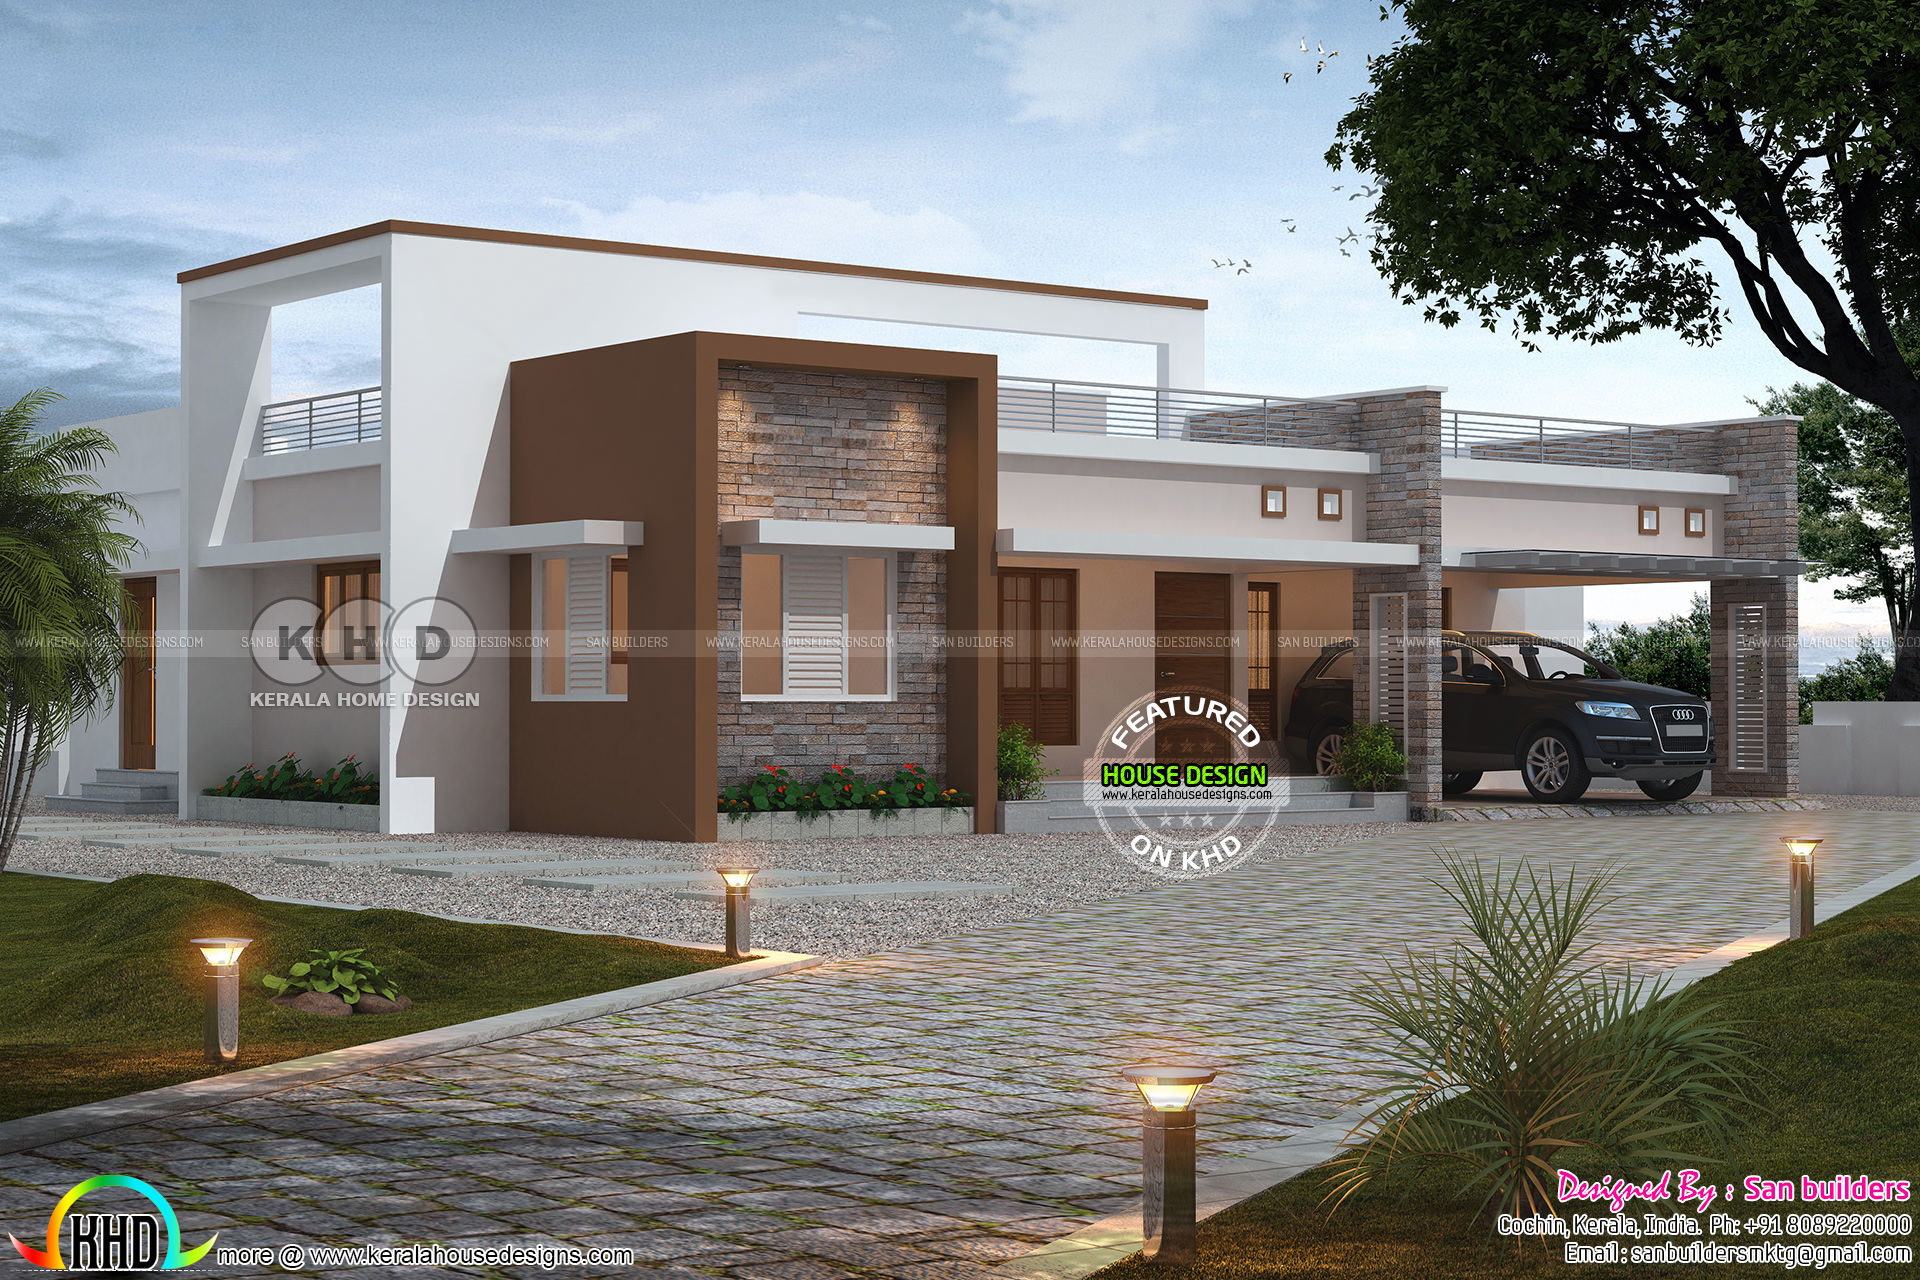 3 Bedroom Single Floor Flat Roof Home 2424 Square Feet Kerala Home Design And Floor Plans 8000 Houses